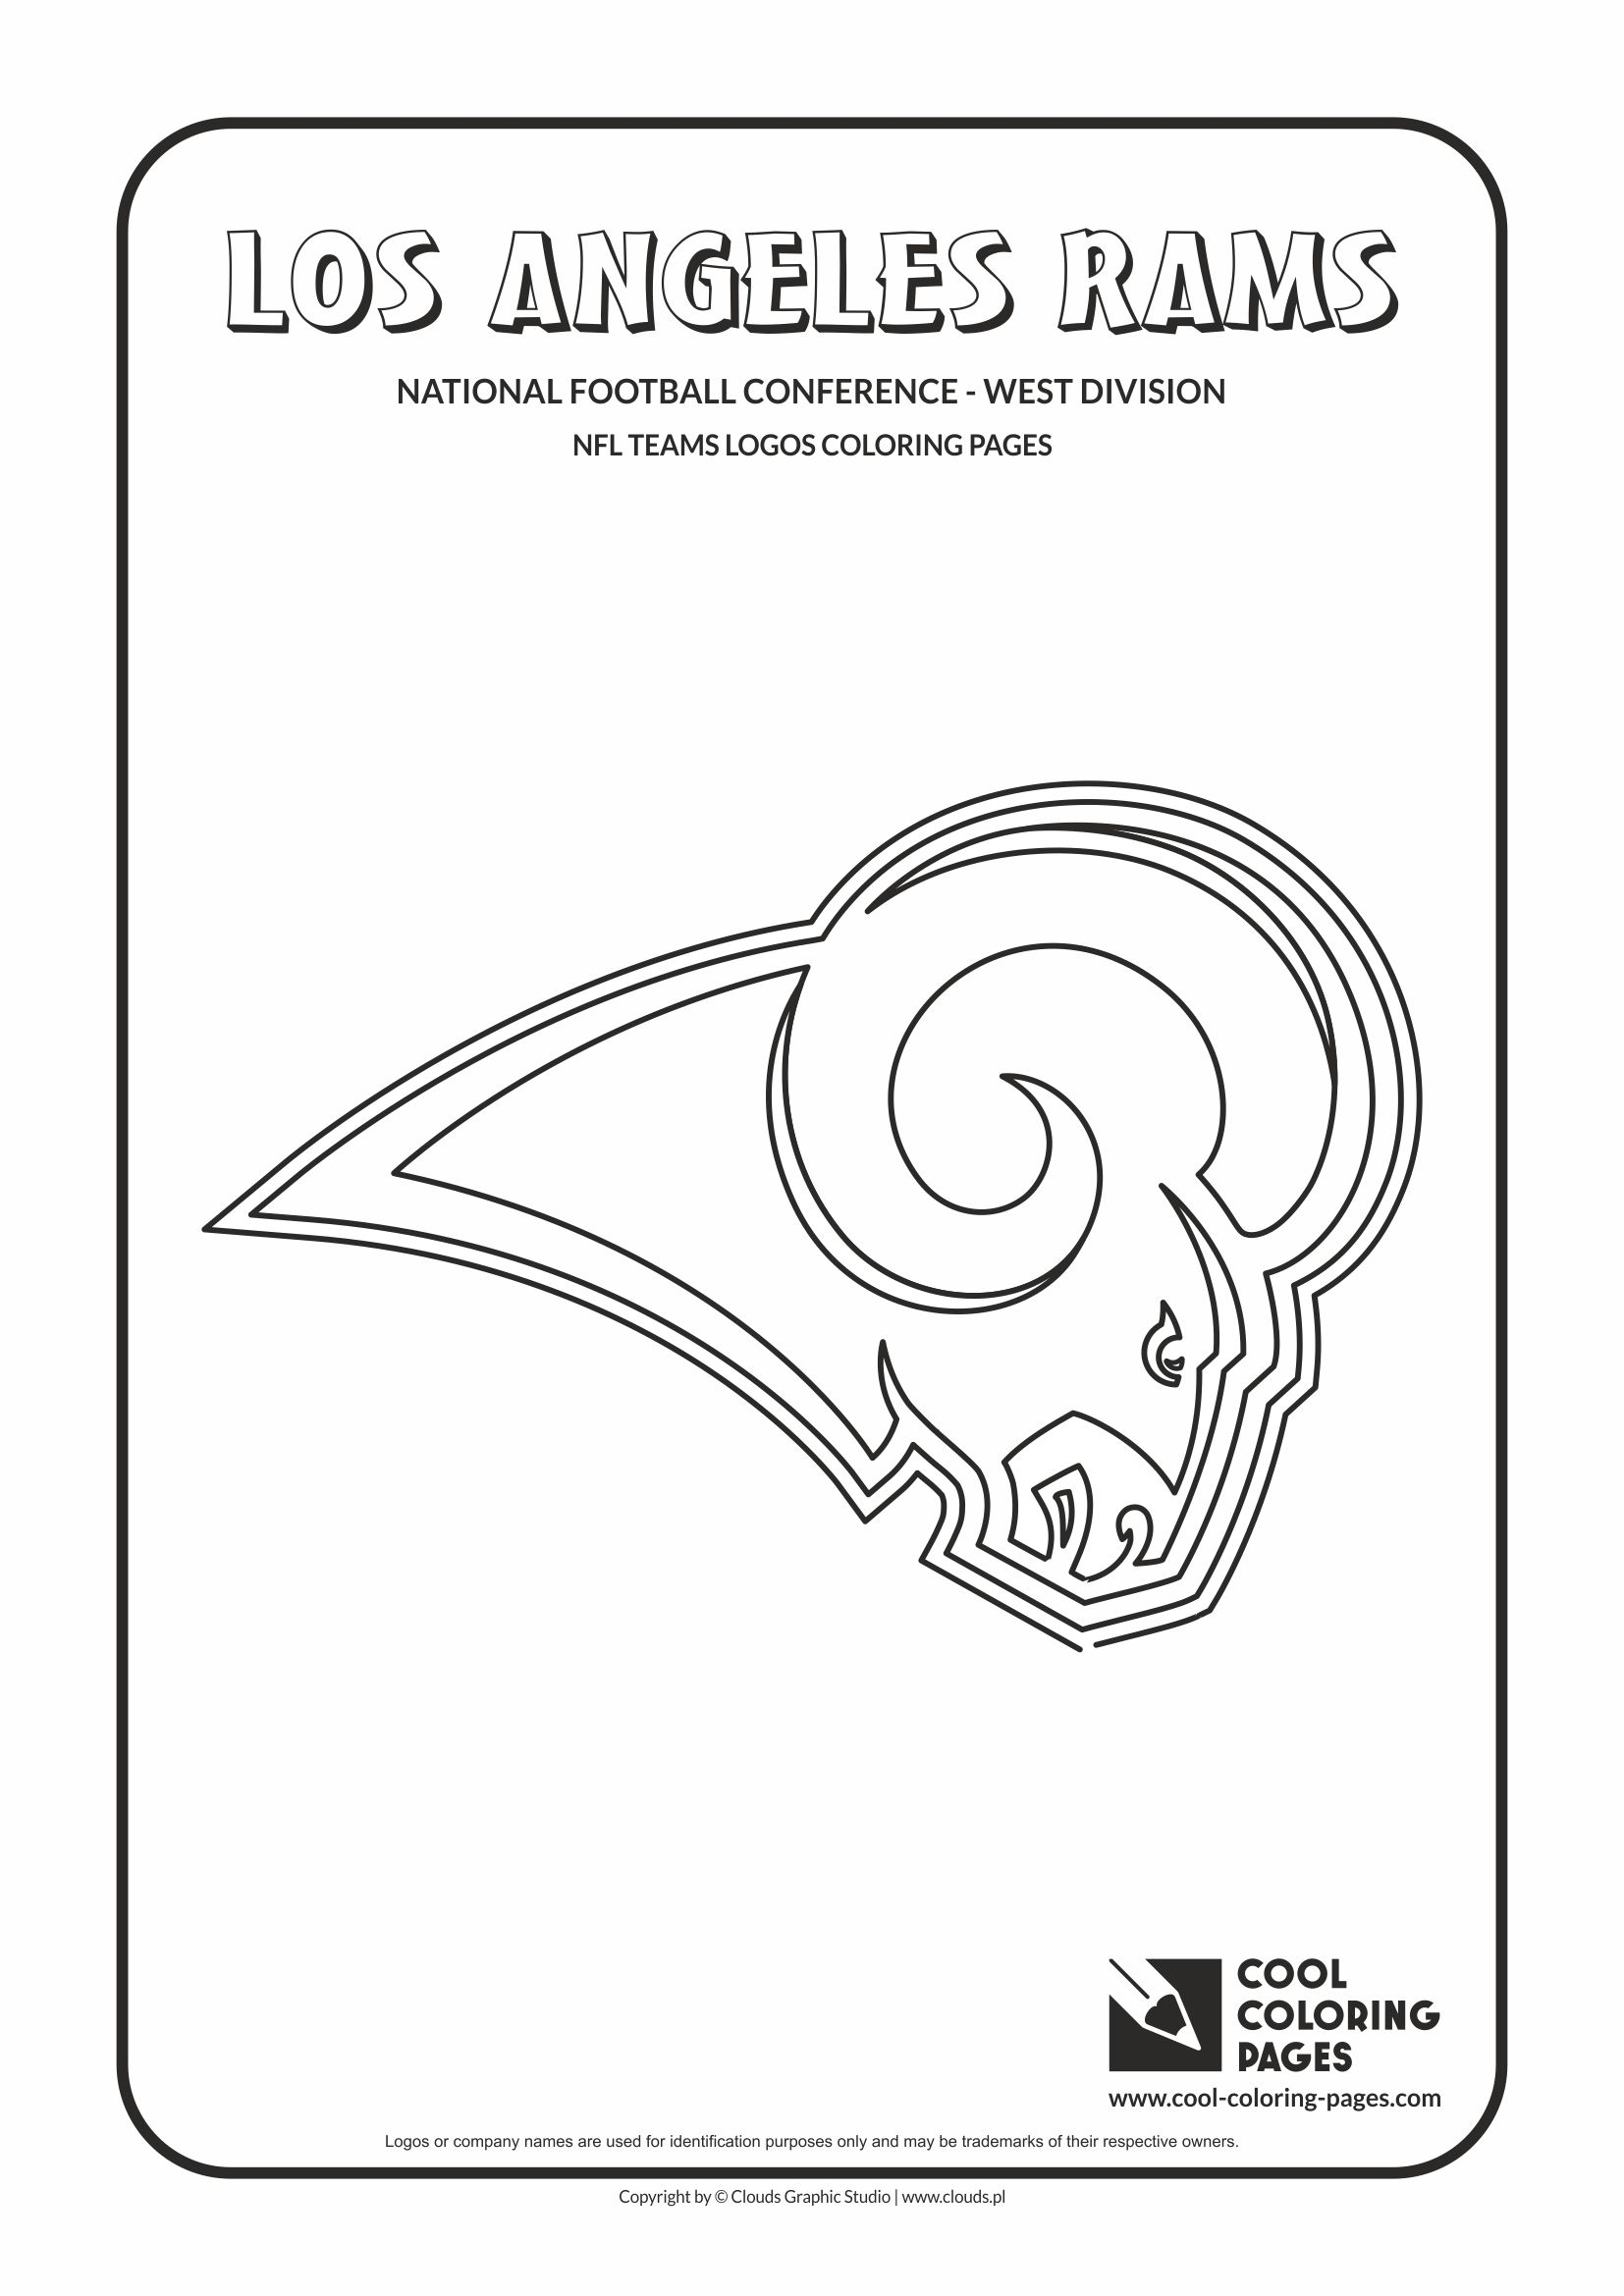 los angeles rams u2013 nfl american football teams logos coloring